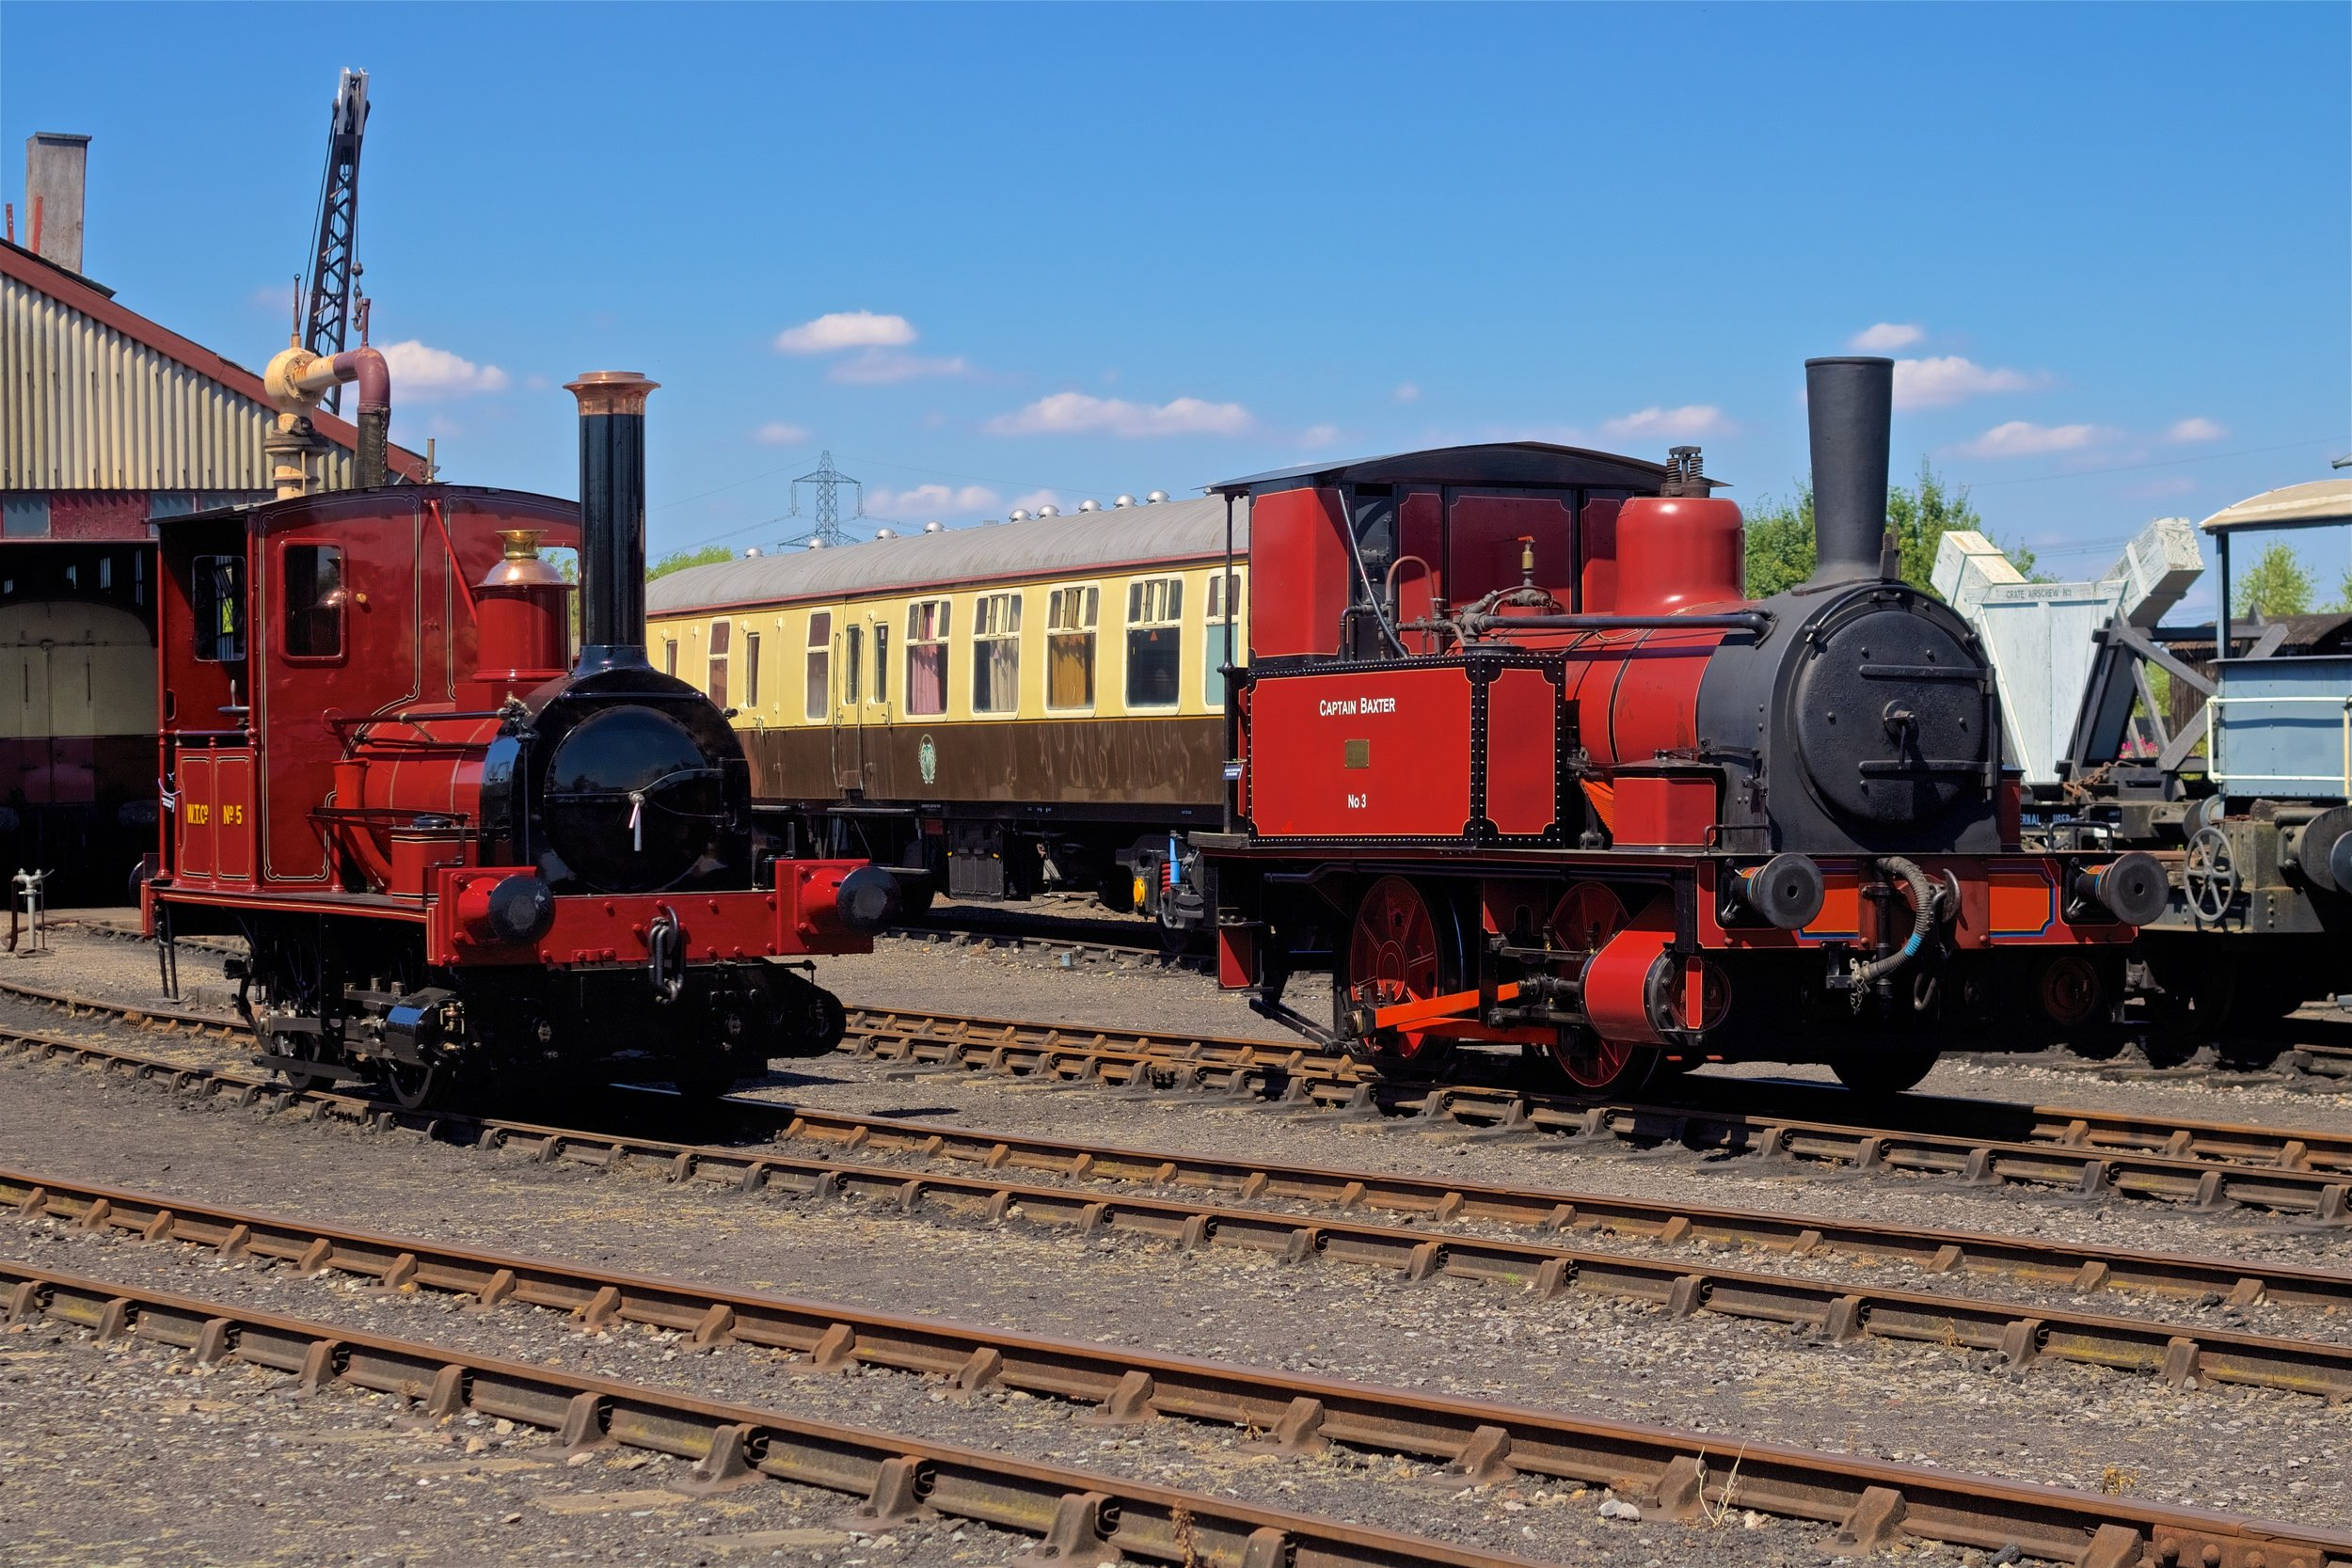 """Fletcher Jennings & Co. - """"Captain Baxter"""" and George England and Co. - """"Shannon"""" at the Didcot Railway Centre July 15th. Photo by Gwion Rhys Davies."""